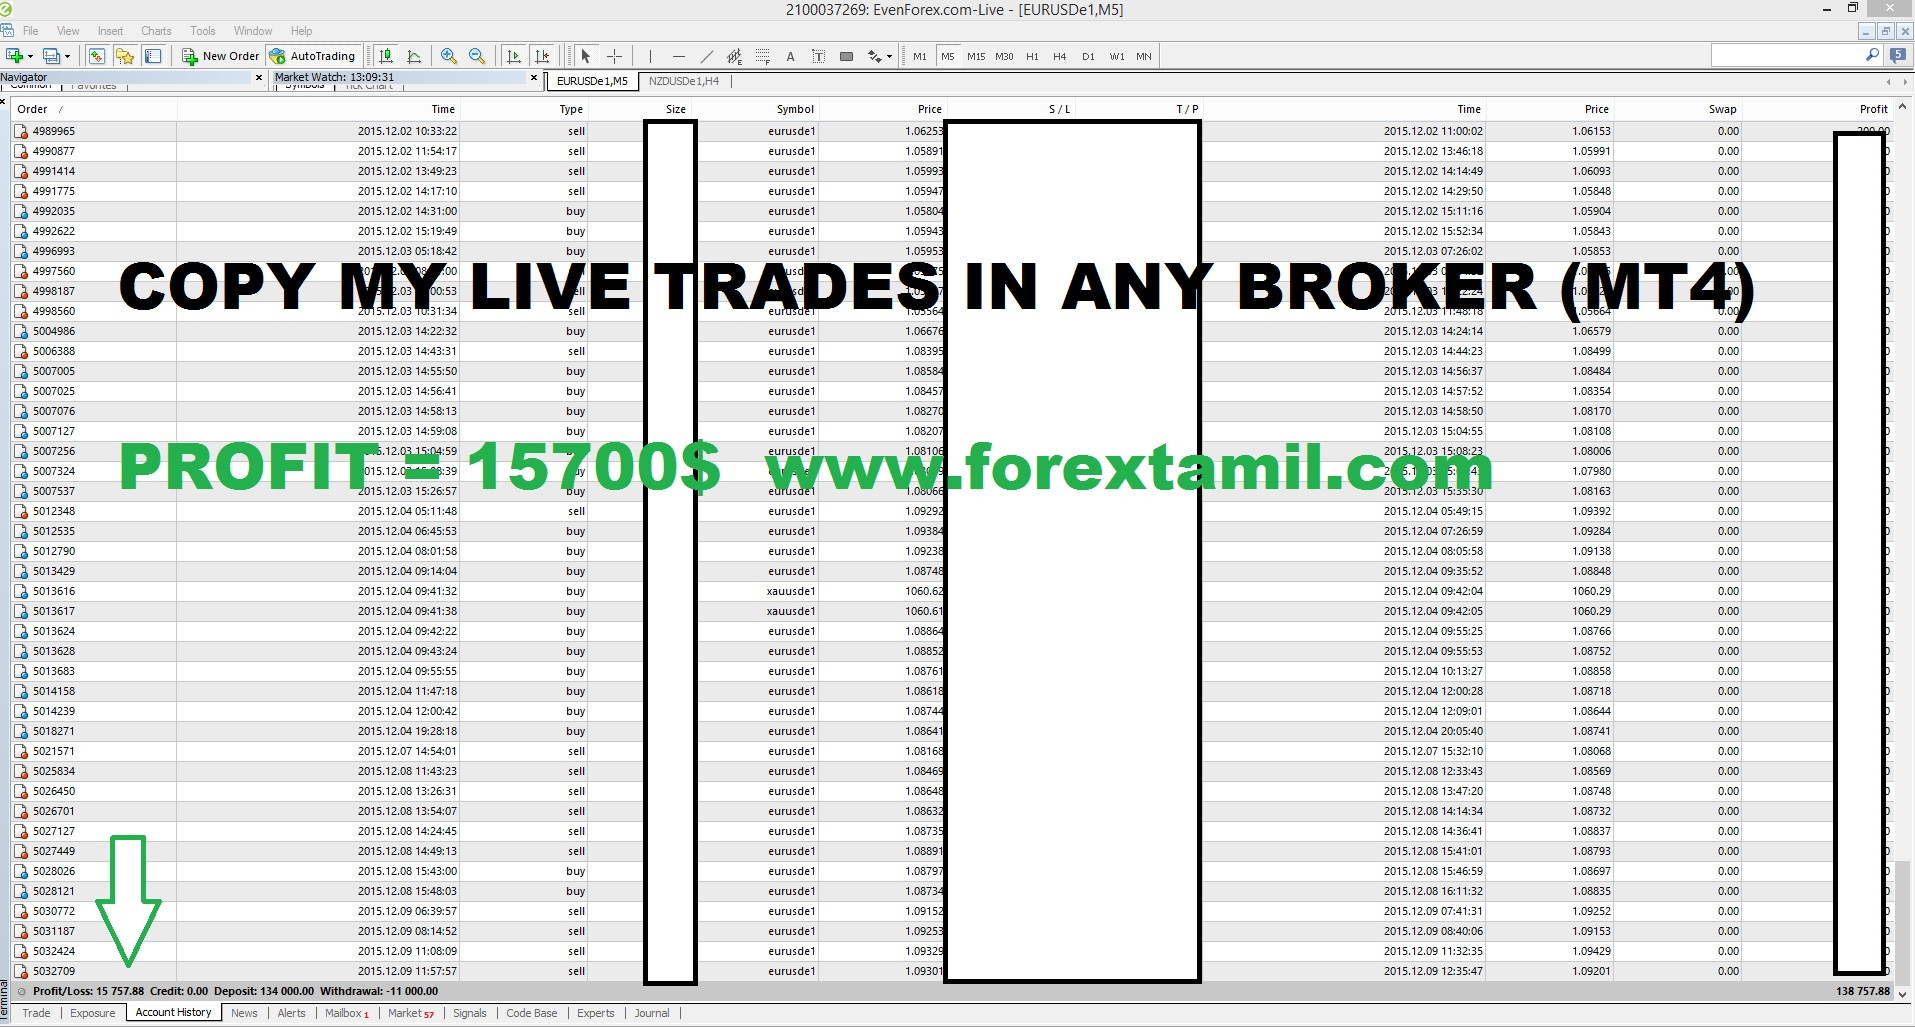 The best forex broker ever